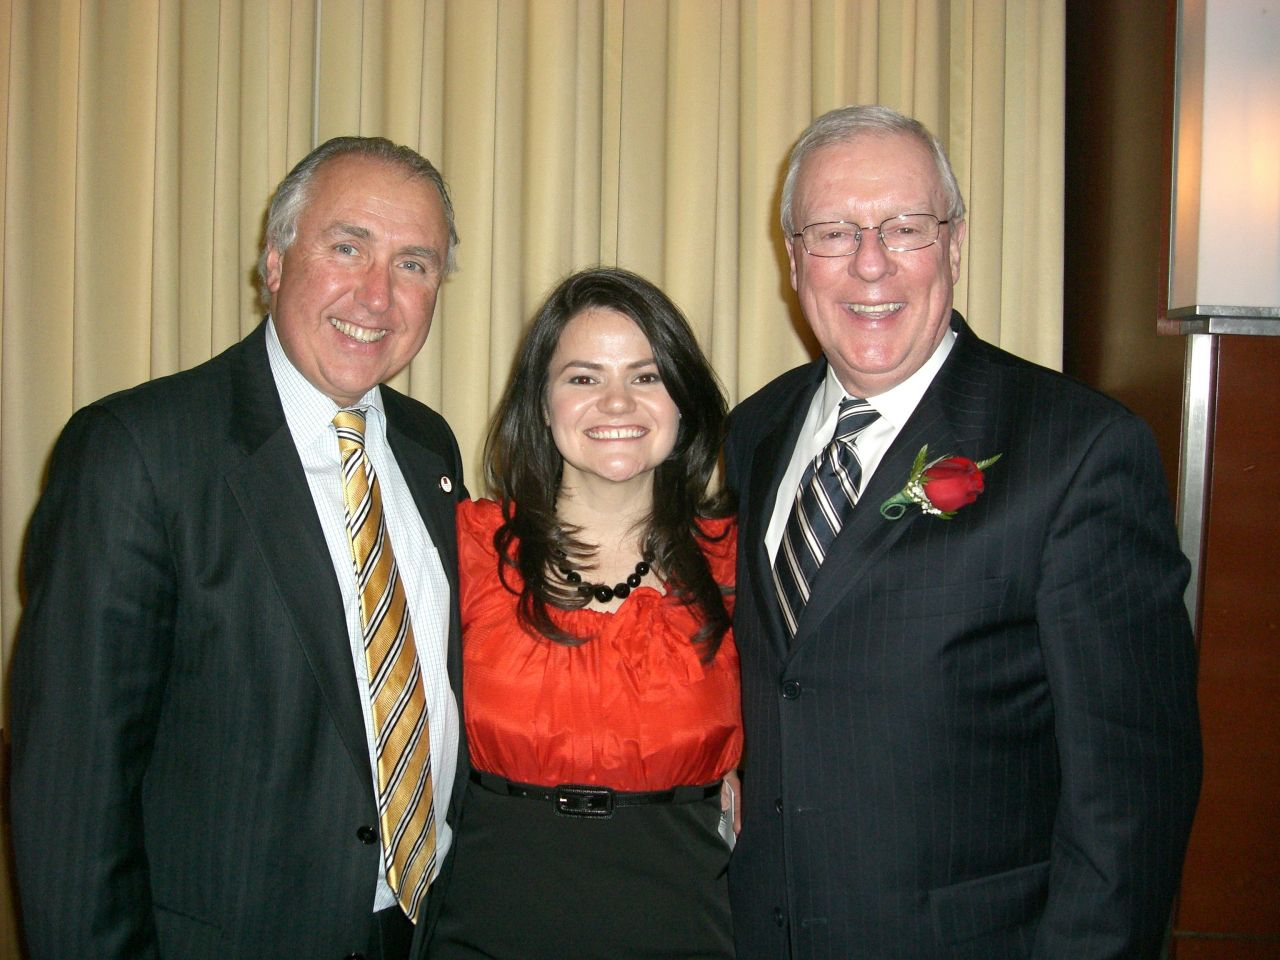 ISBA Board of Governors member Umberto Davi, newly installed Advocates Society President Megan Kaszubinski Ferraro and ISBA President John G. O'Brien attend the Advocates Society Installation dinner last week.